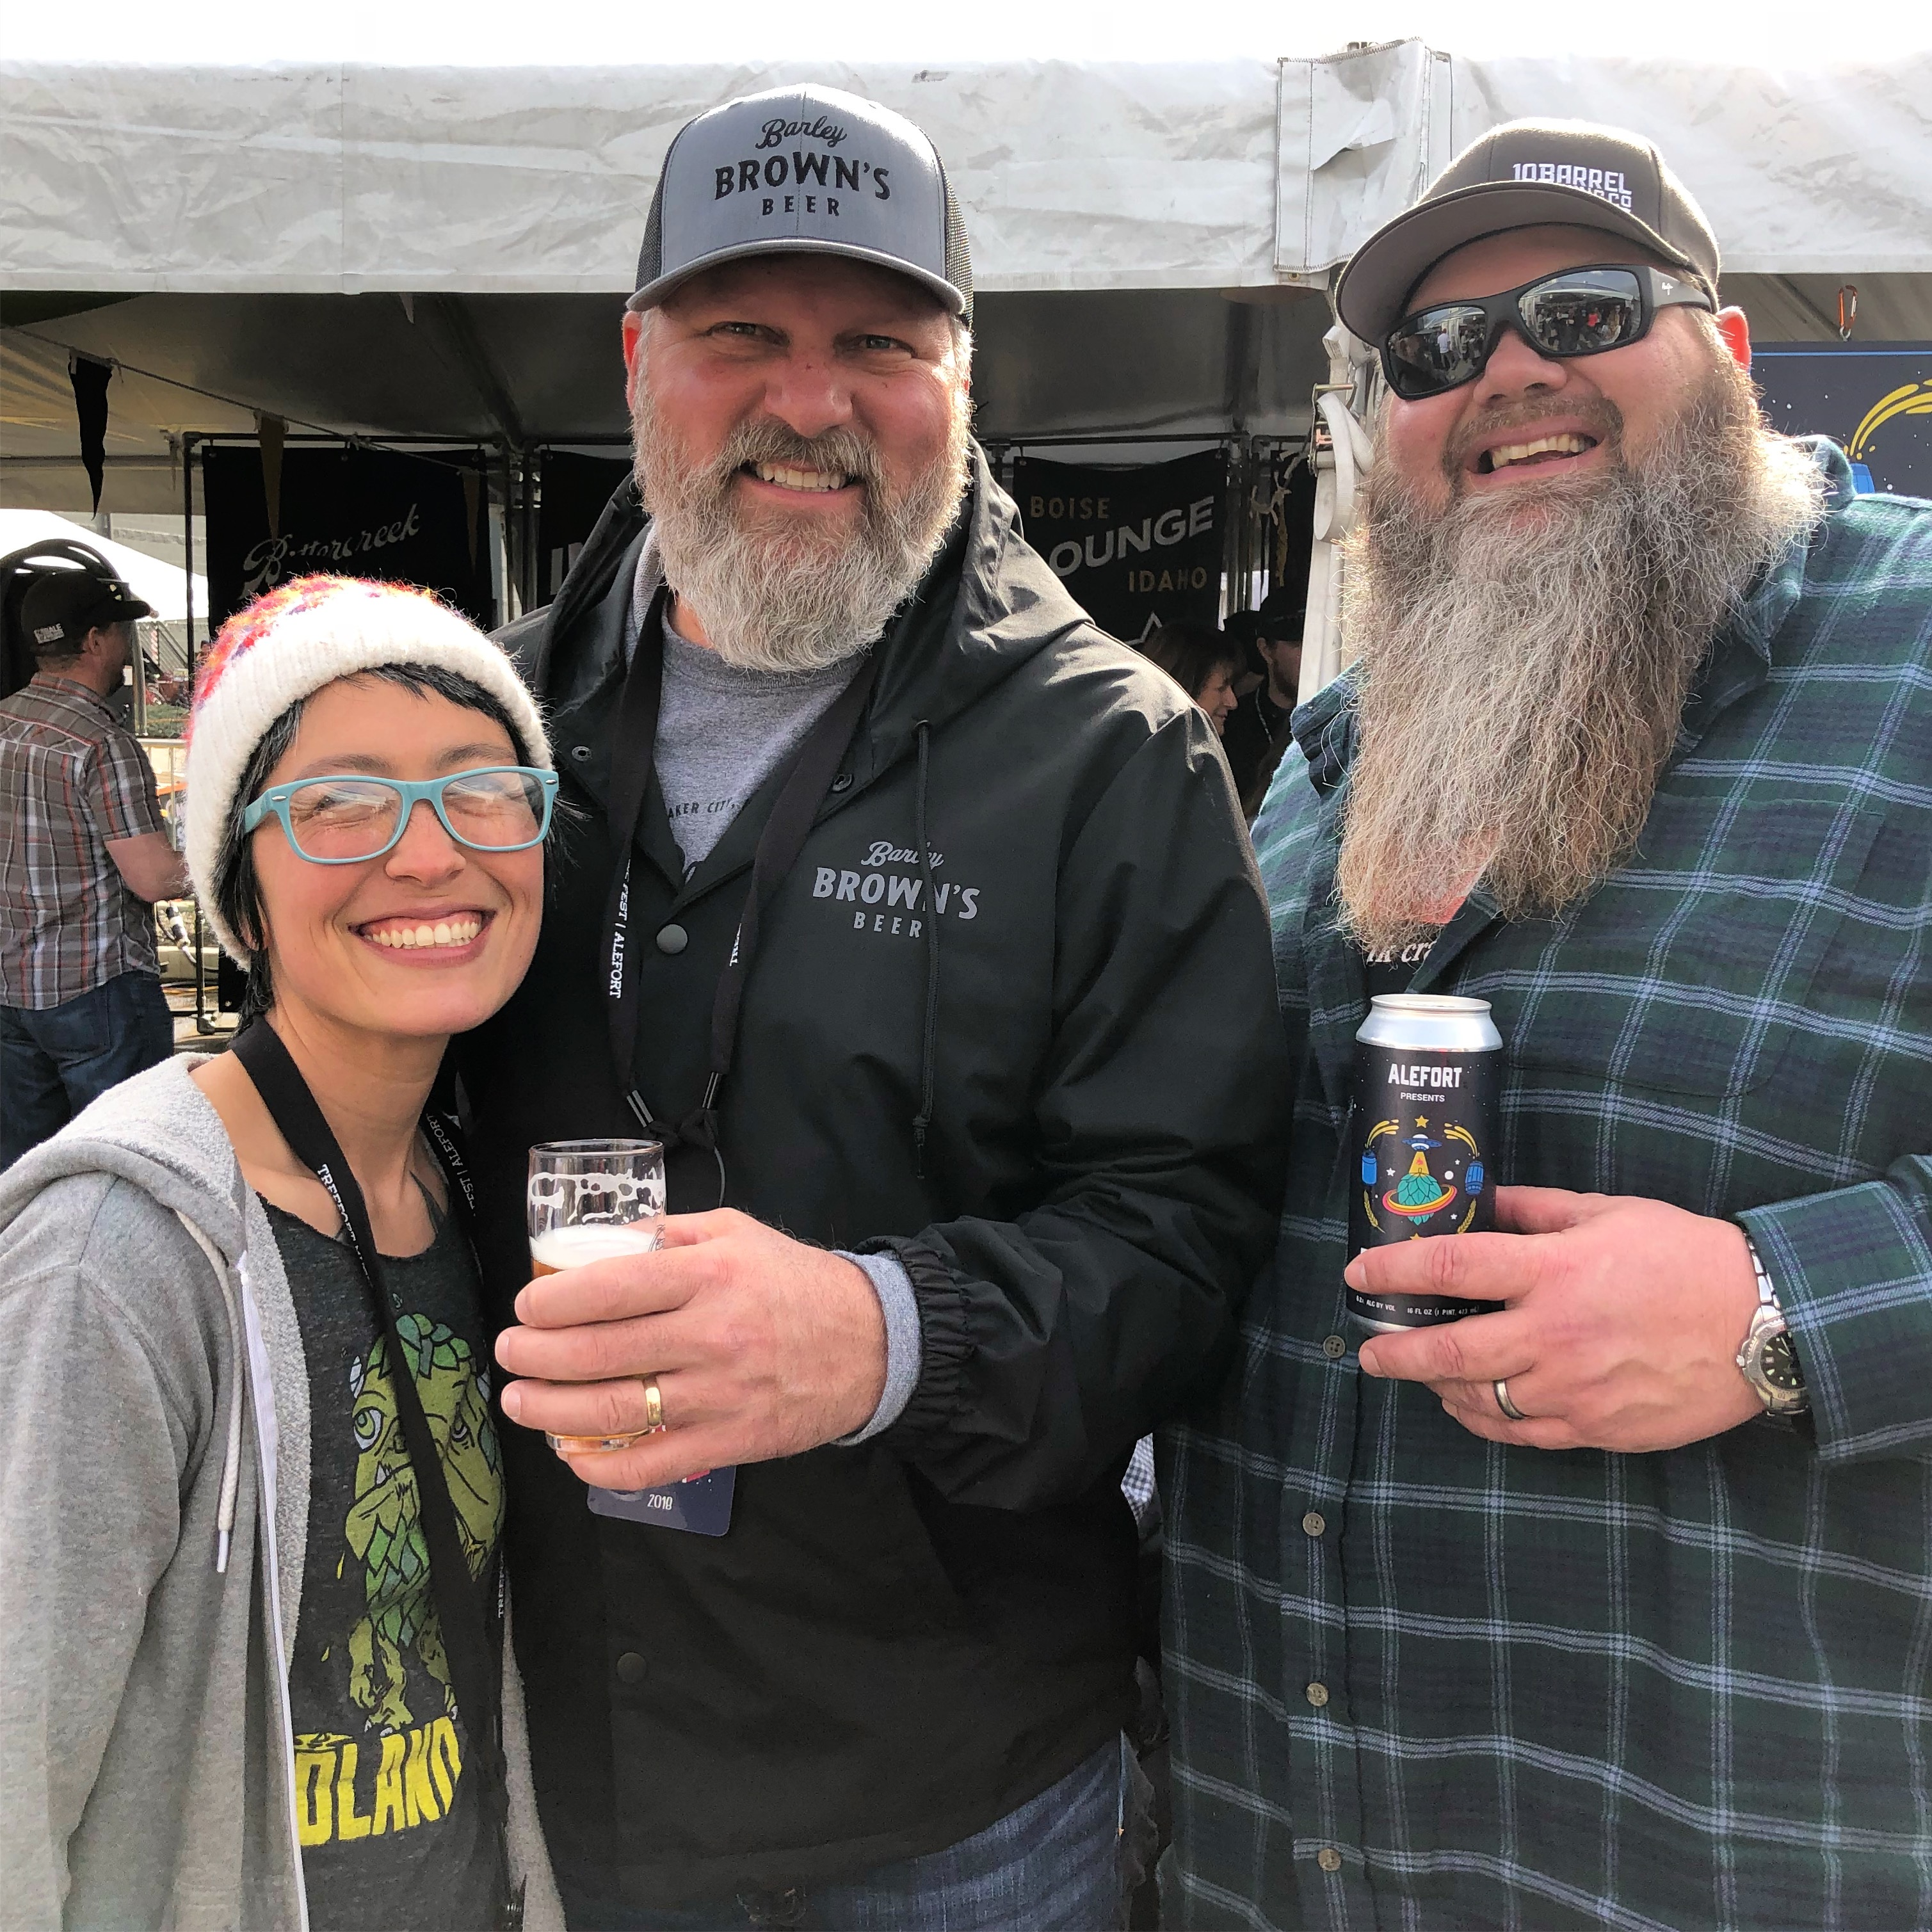 Keely Landerman from Woodland Empire Ale Craft, Tyler Brown from Barley Brown's and Shawn Kelso from 10 Barrel Brewing during the 2018 Alefort.